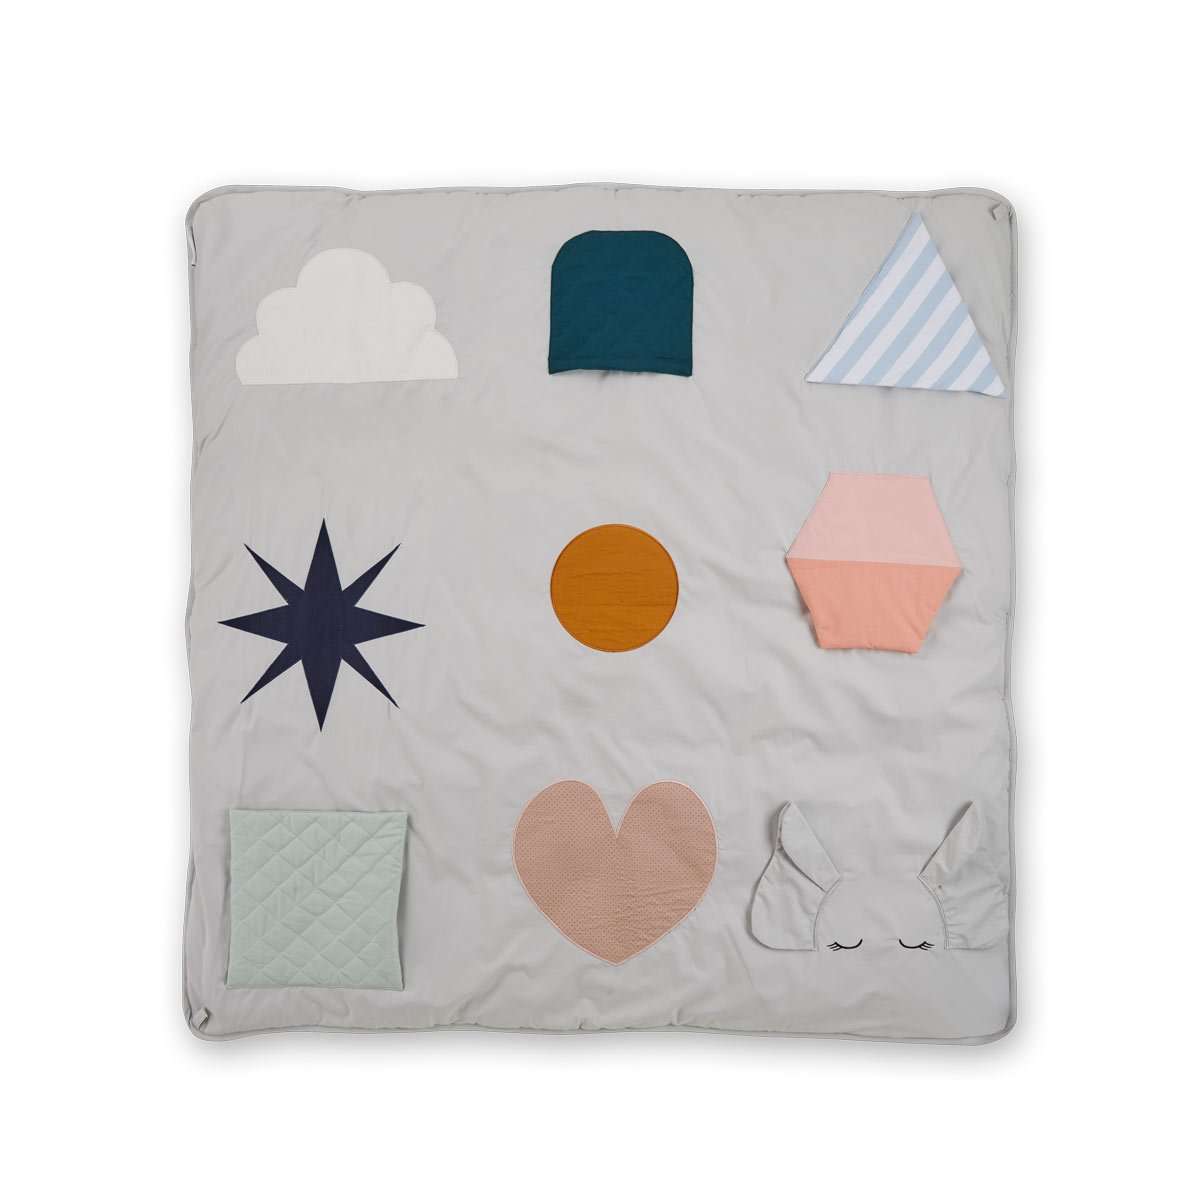 LIEWOOD Maude activity blanket